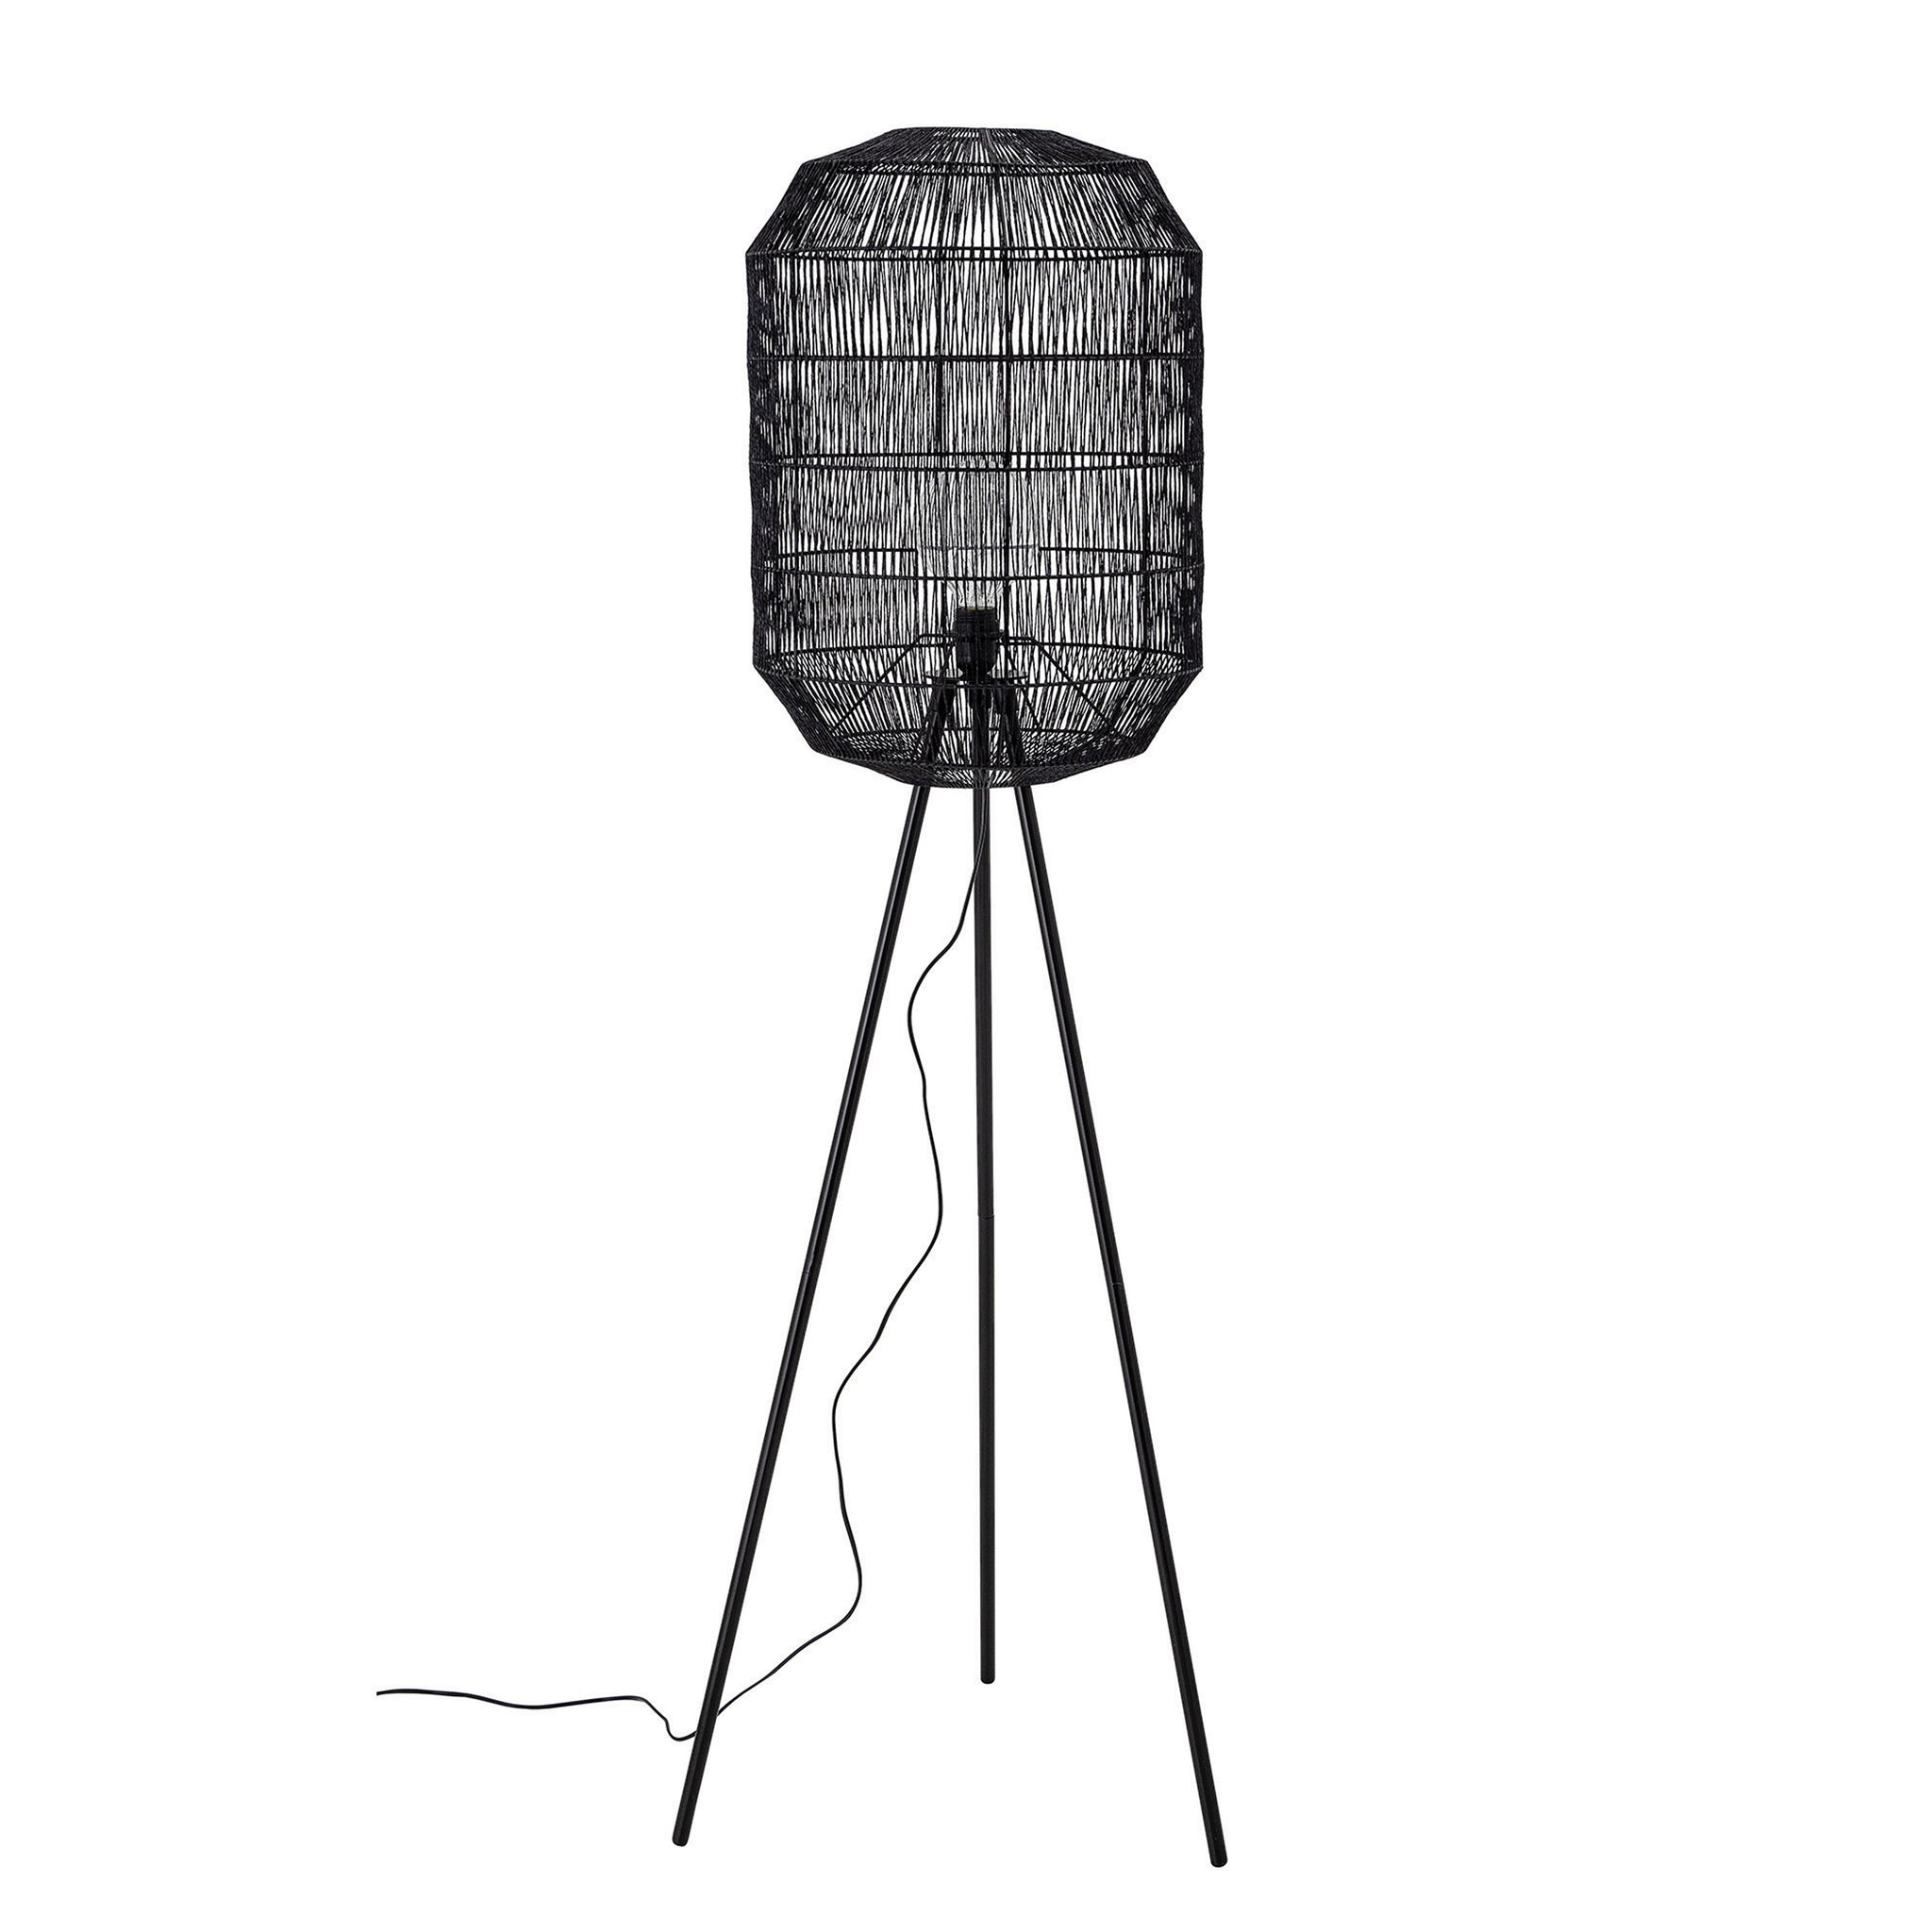 Oval Paper Rope Floor Lamp with Metal Tripod Legs